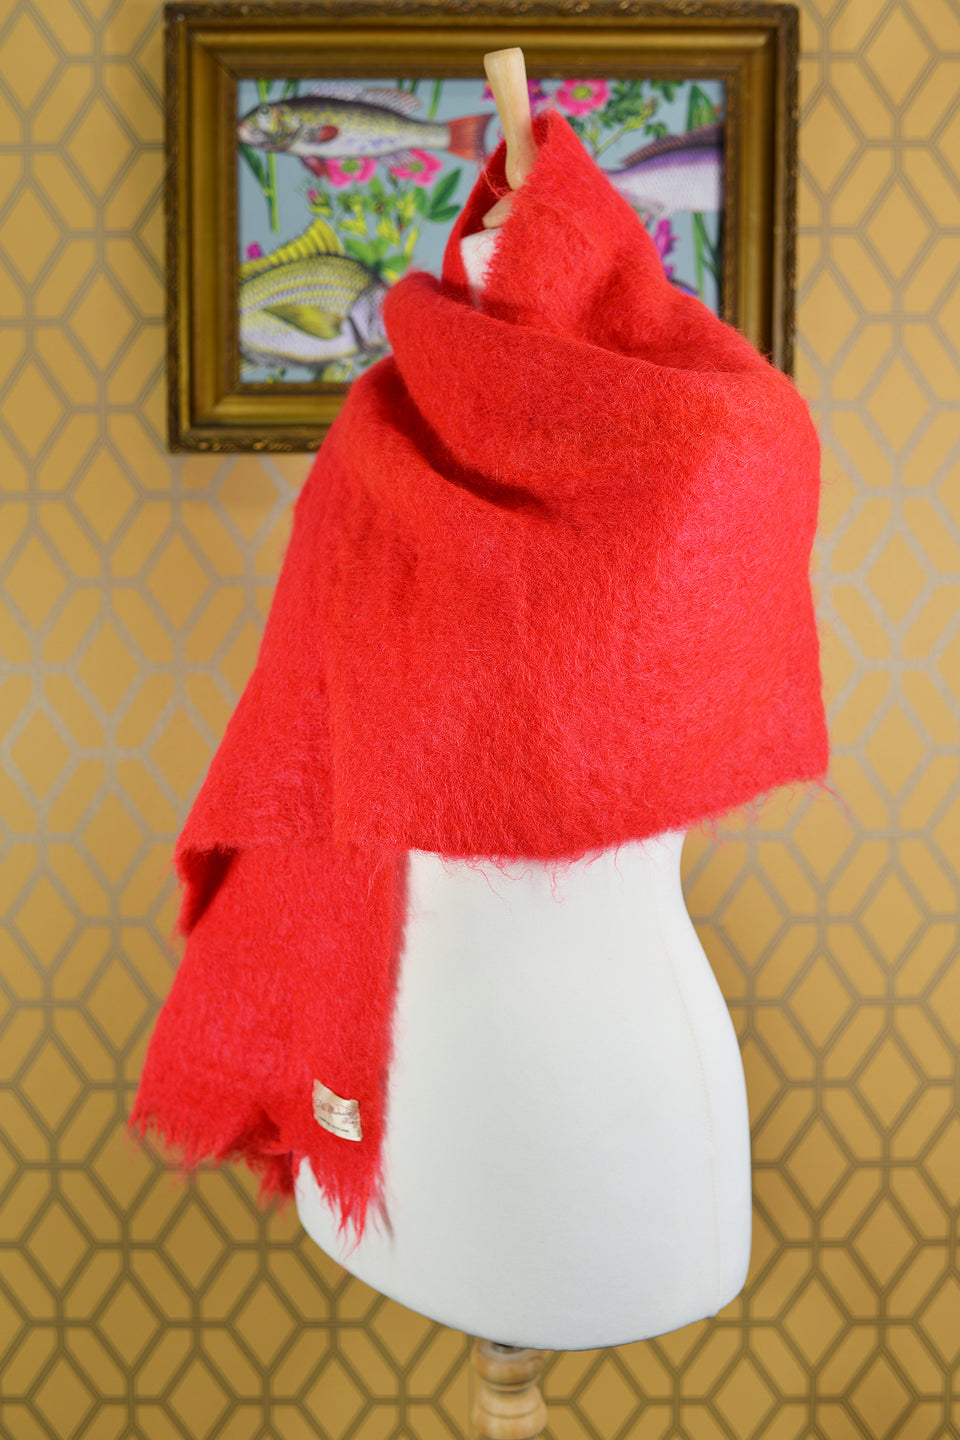 All Mohair Pile, Large Red Wool Scarf, 48x90cm. Made in Scotland. Pre-loved.